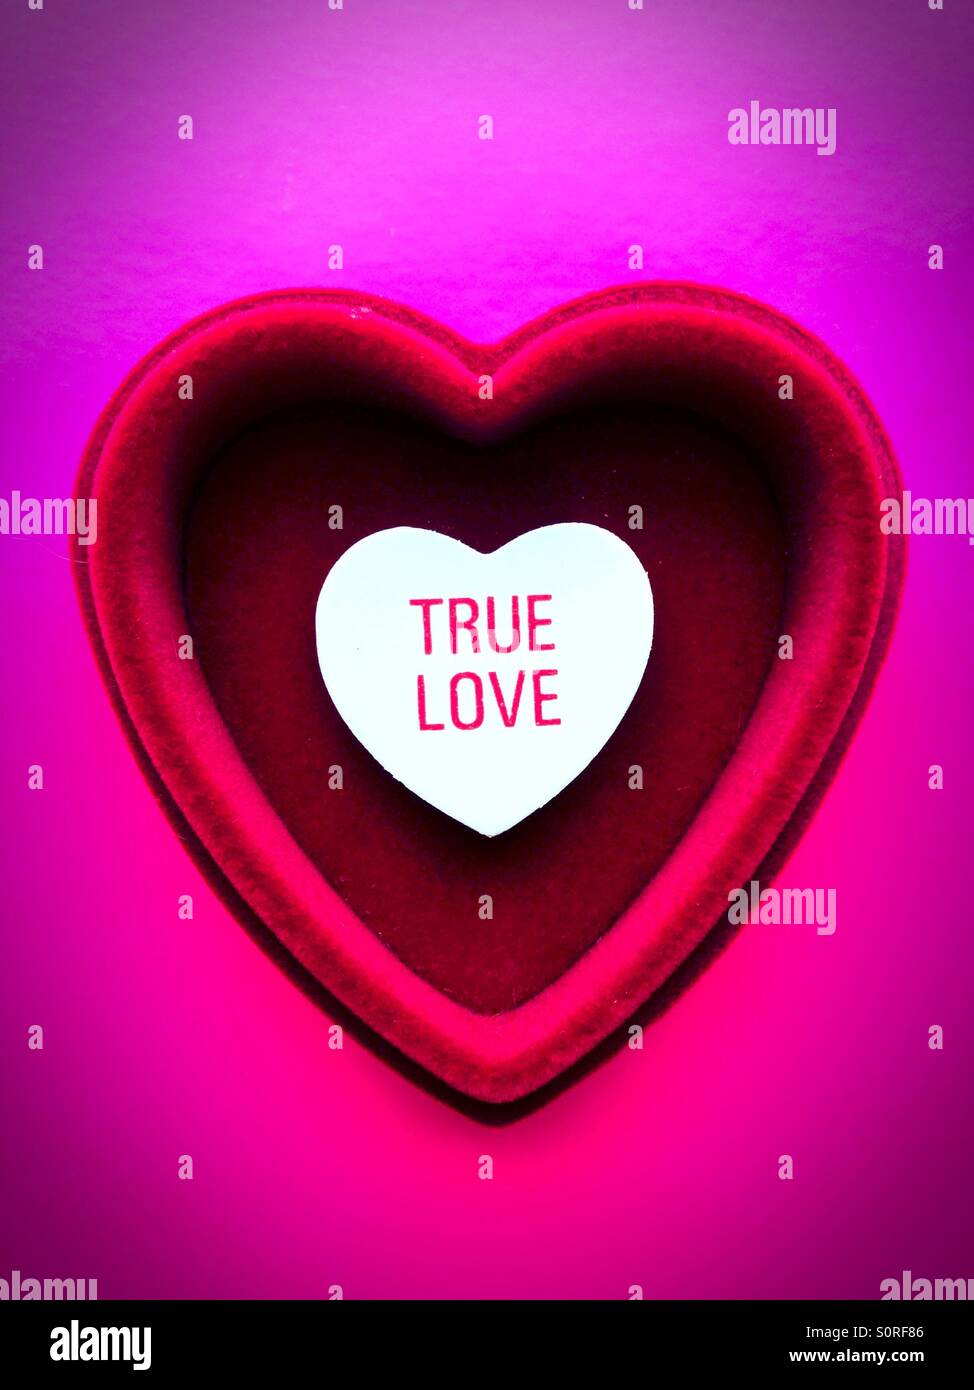 A heart inside of another heart with the words true love written on it. - Stock Image